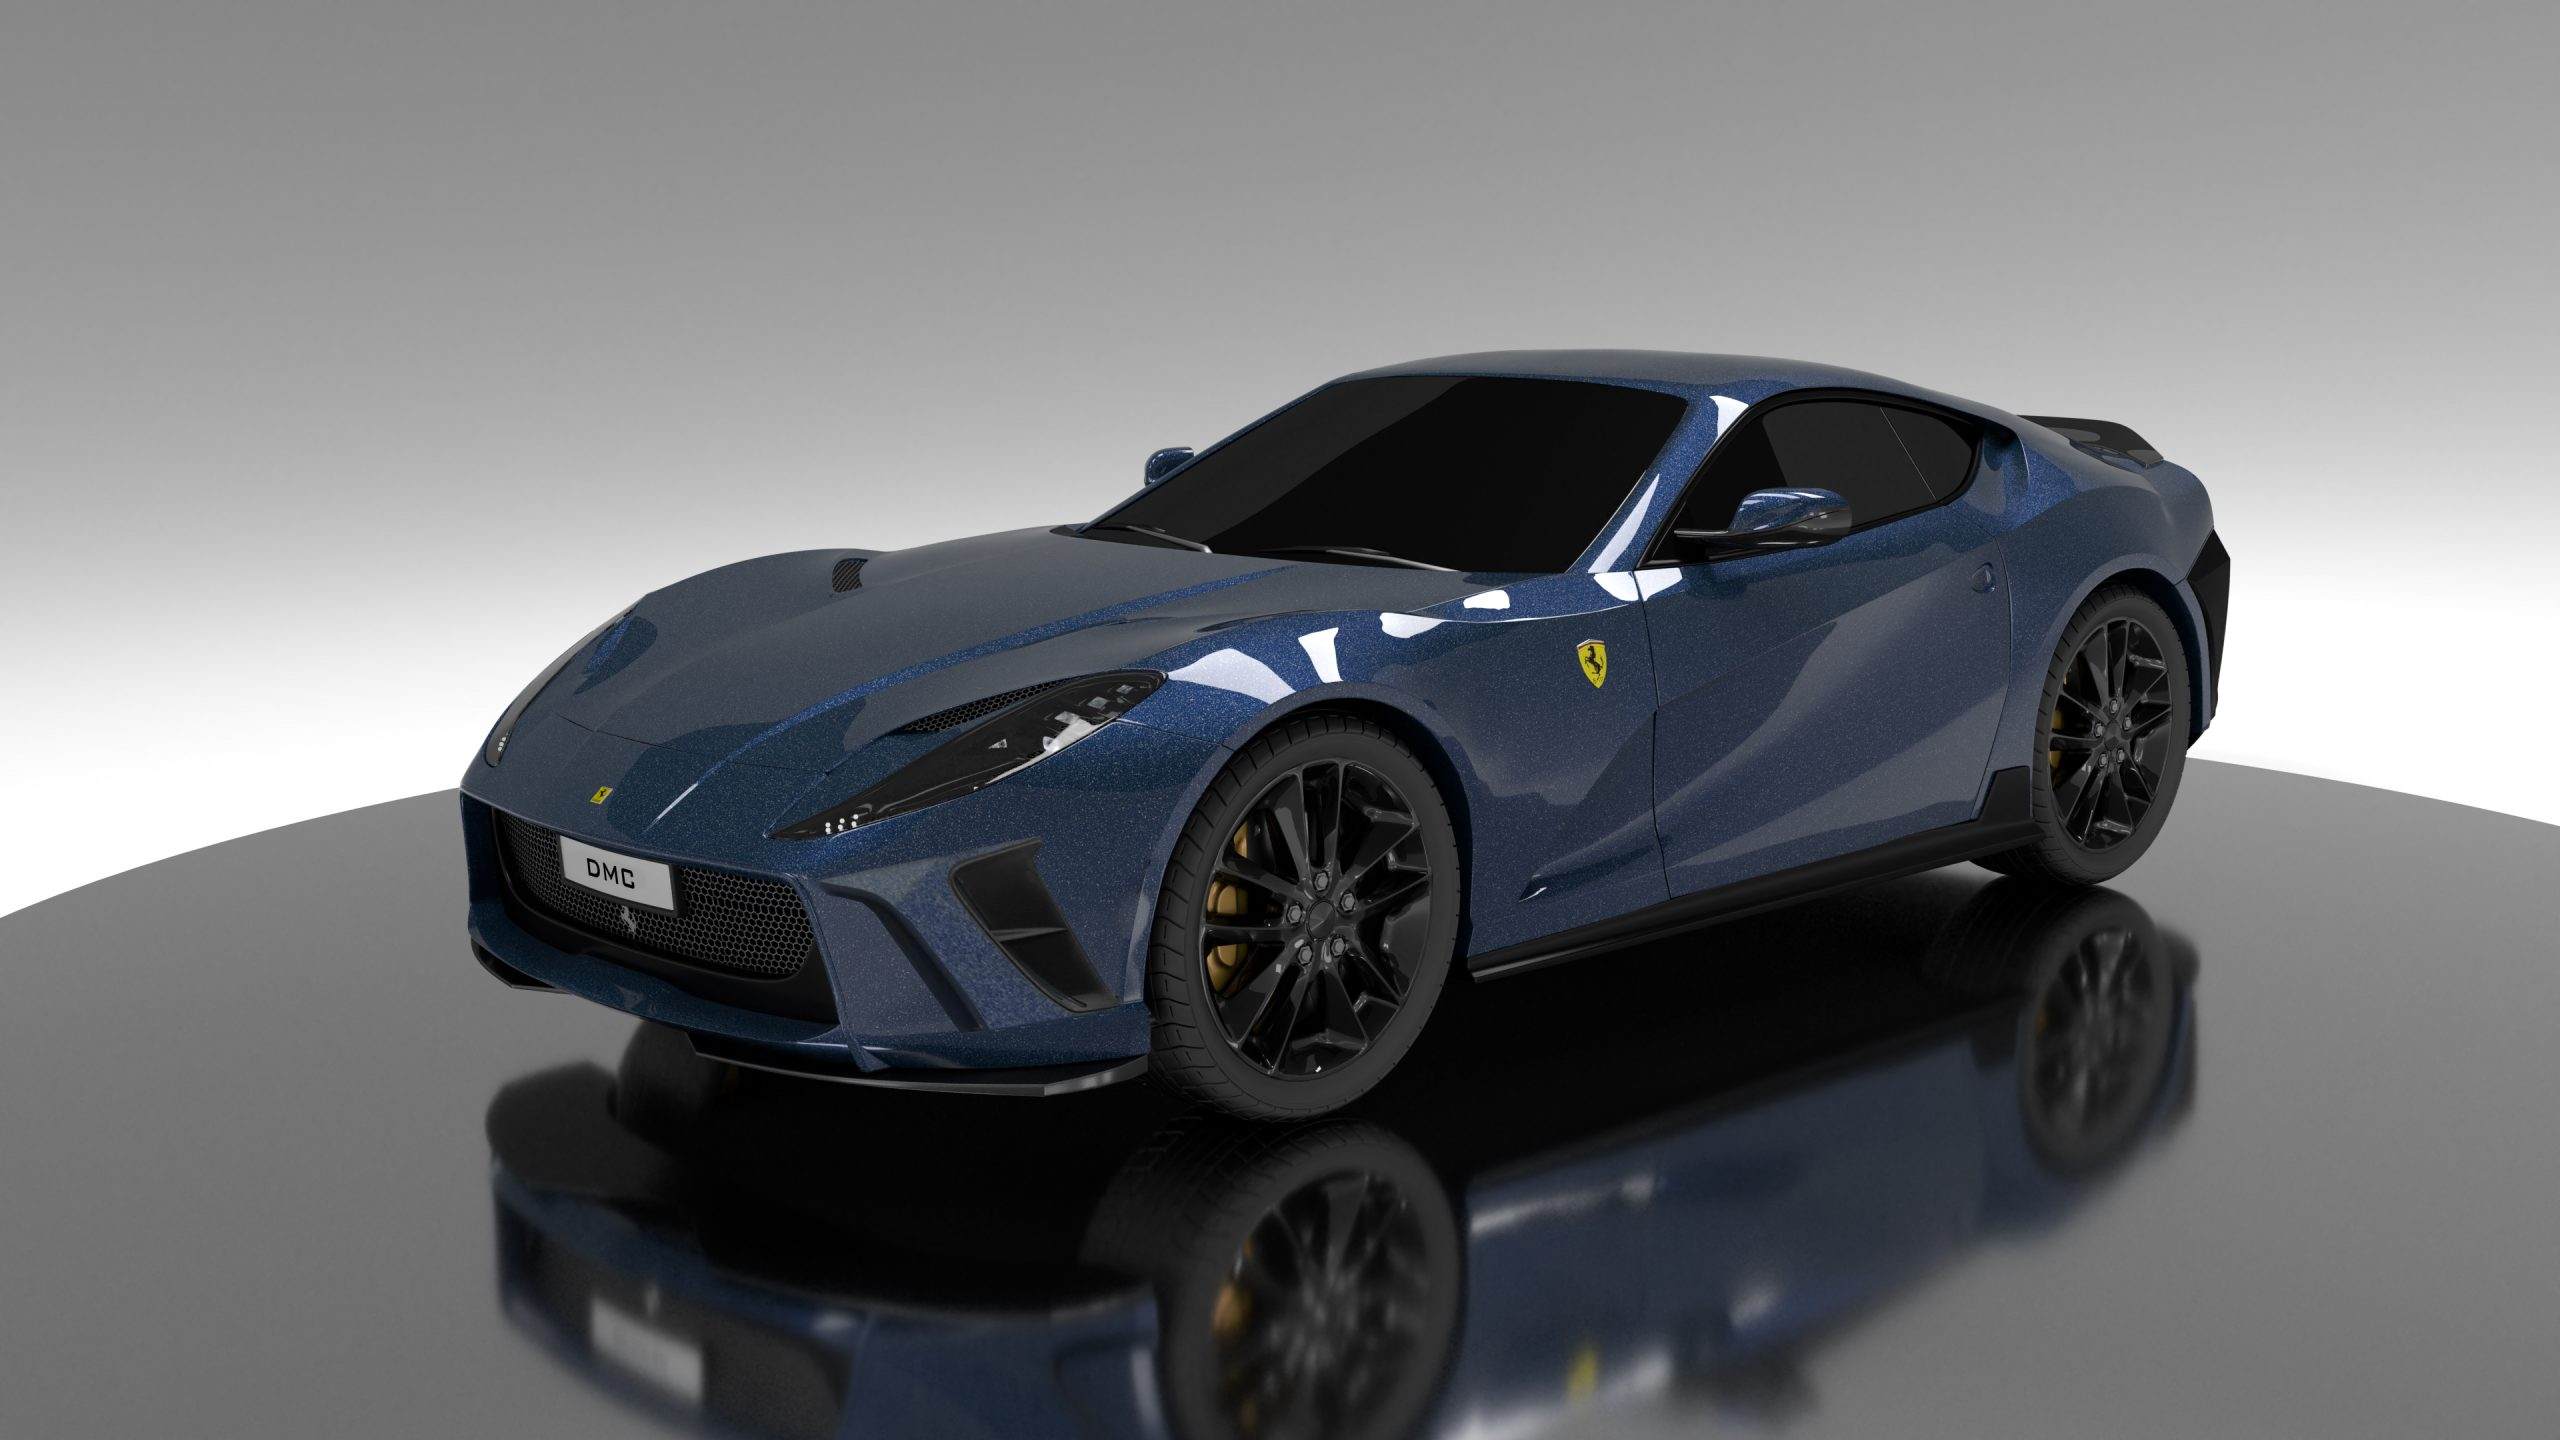 Ferrari 812 Superfast Carbon Fiber Body kit with Front Bumper